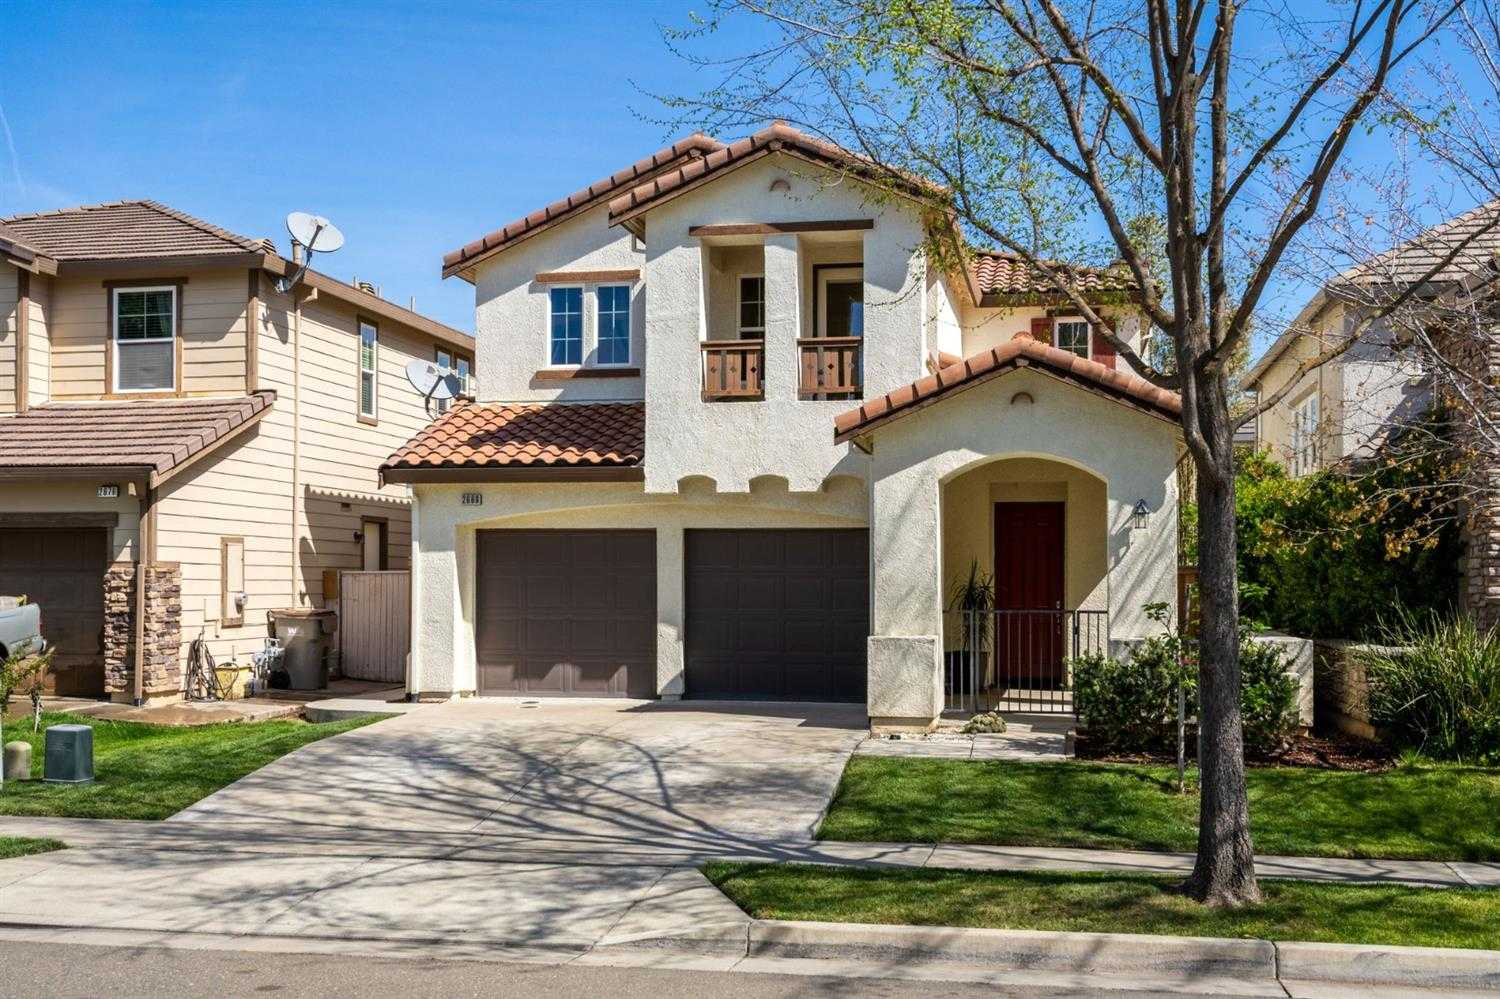 $585,000 - 4Br/3Ba -  for Sale in West Sacramento